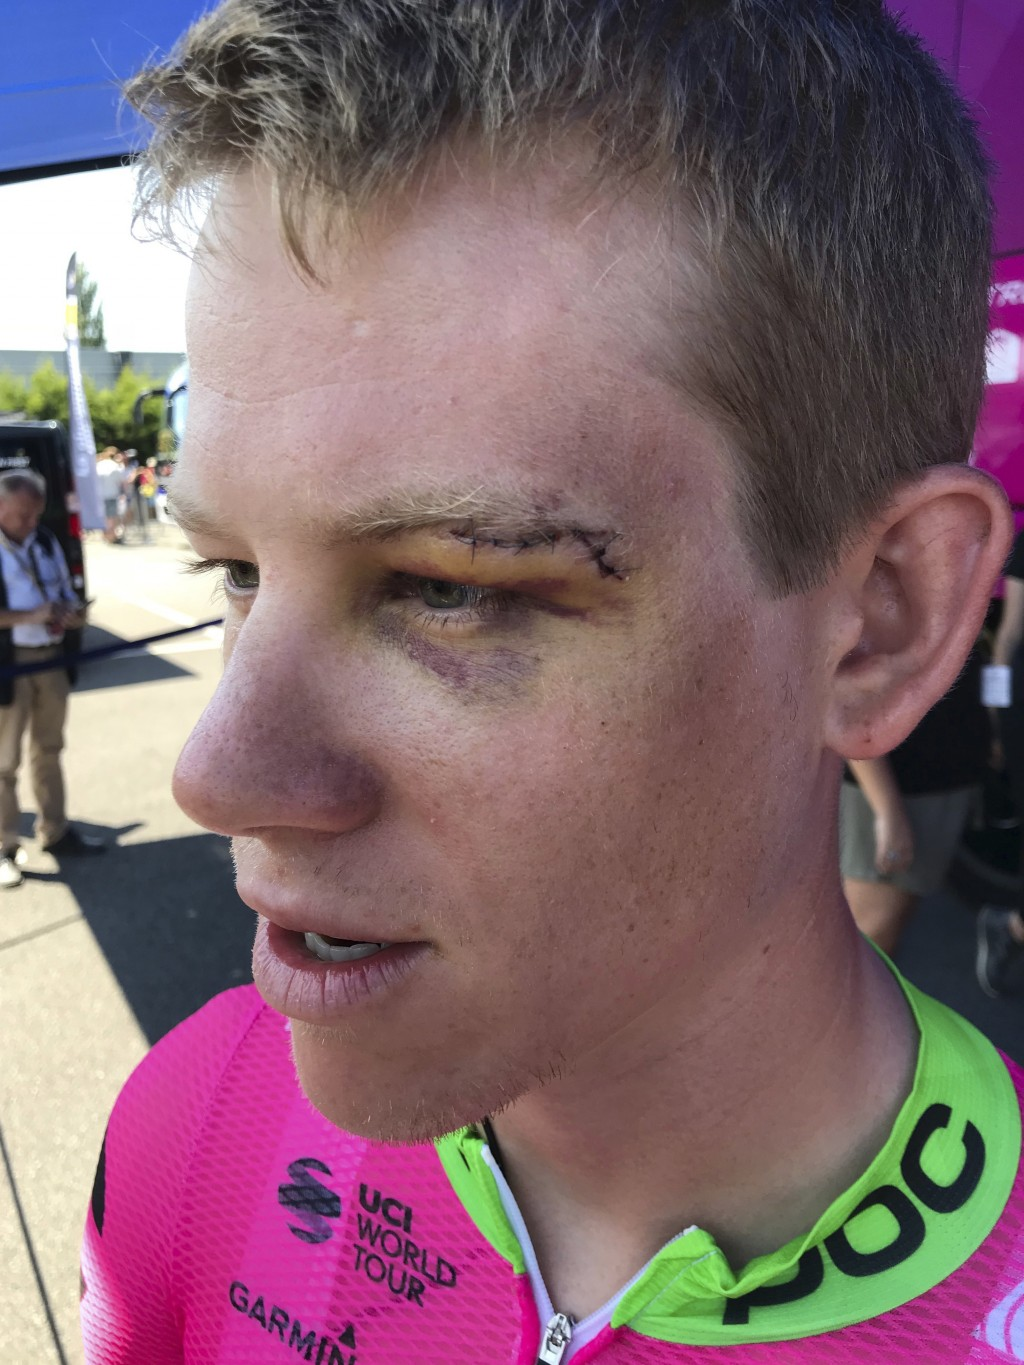 In this July 10, 2018 image, Lawson Craddock of the U.S. talks to reporters in La Baule, France, prior to the start of the fourth stage of the Tour de